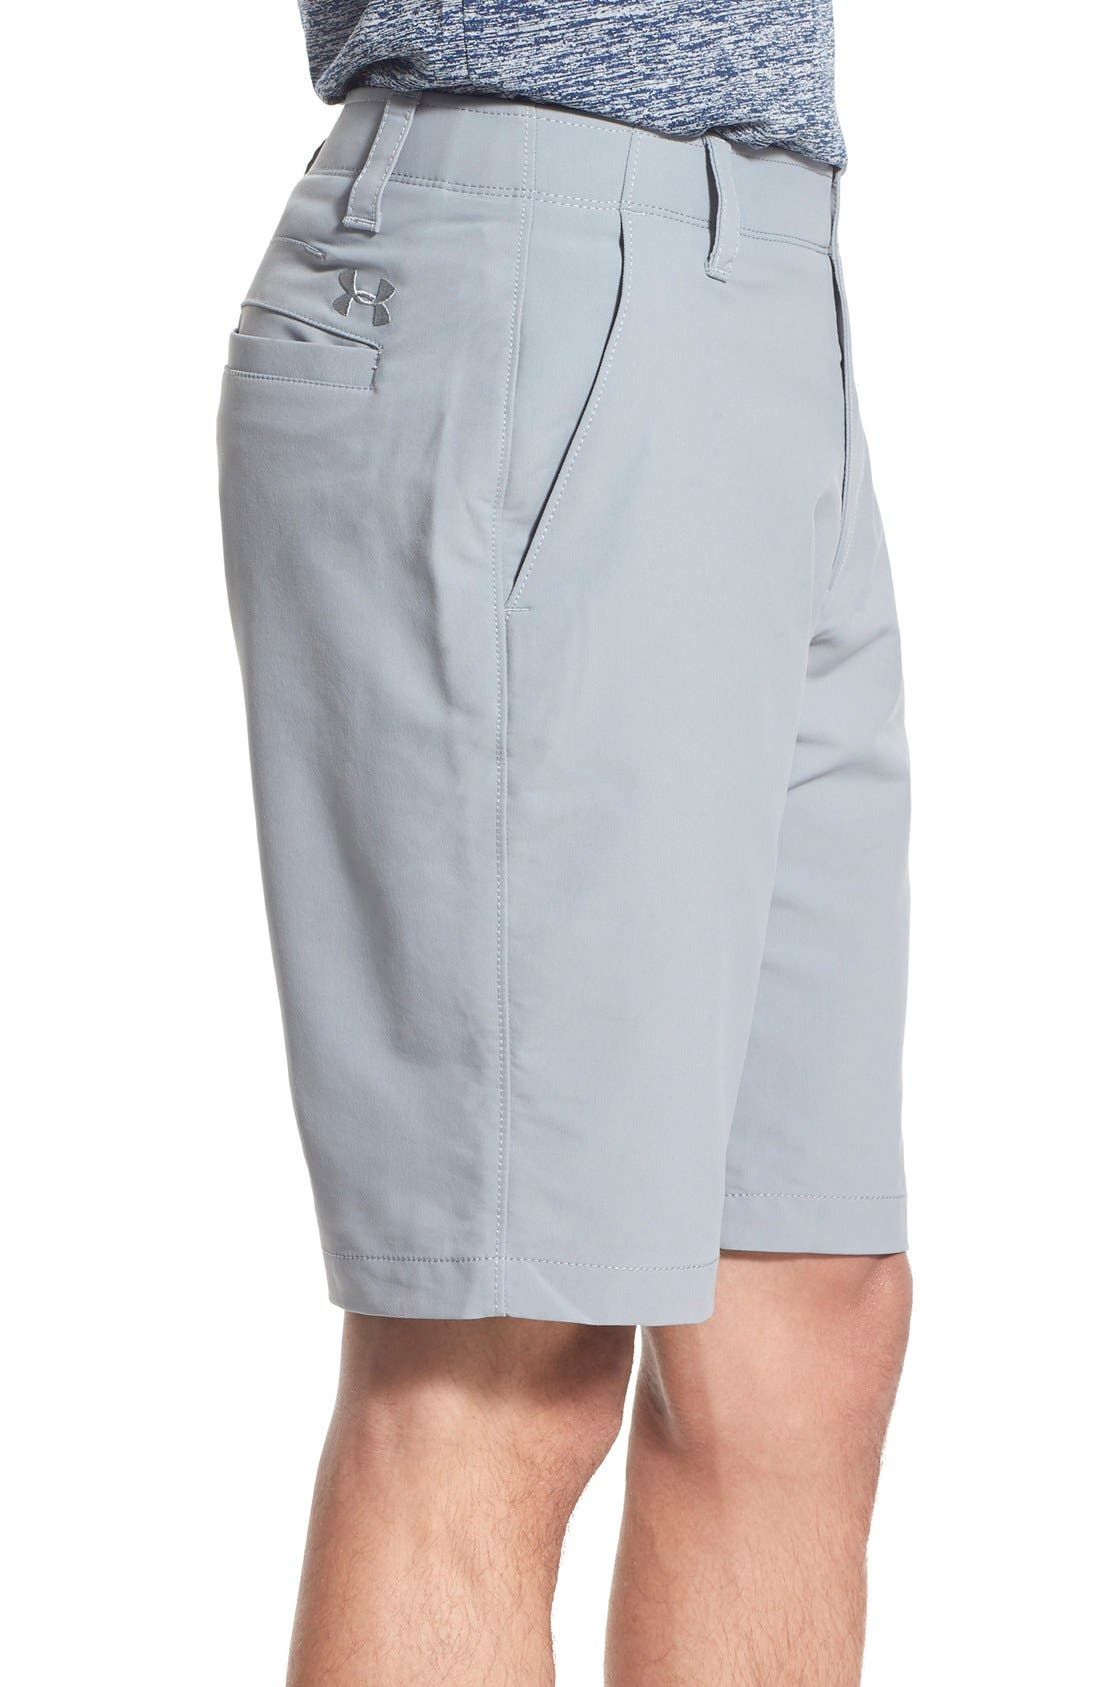 'Matchplay' Moisture Wicking Golf Shorts,                             Alternate thumbnail 3, color,                             Steel